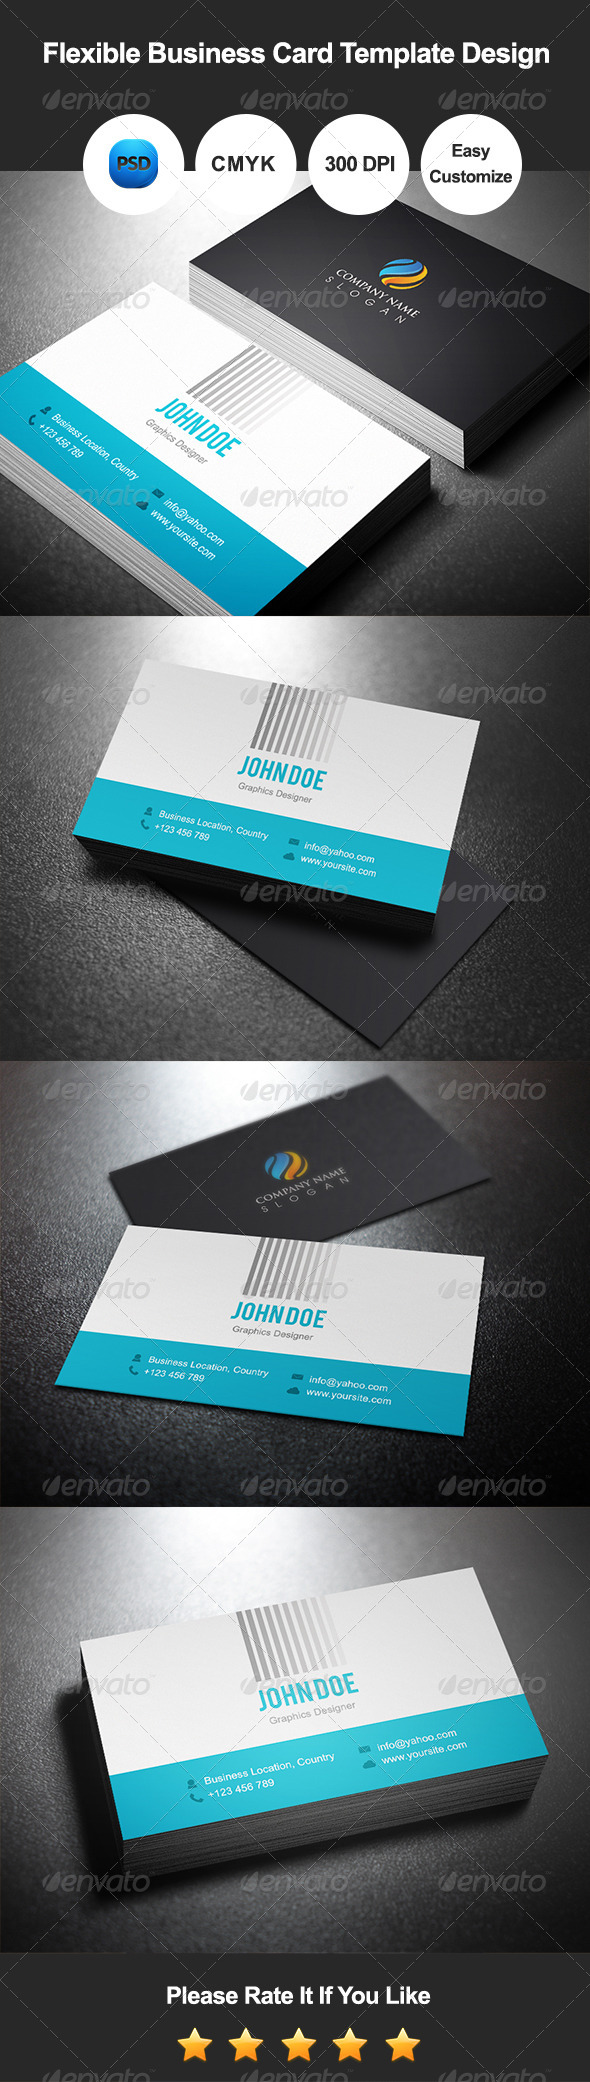 GraphicRiver Flexible Business Card Template Design 7511420